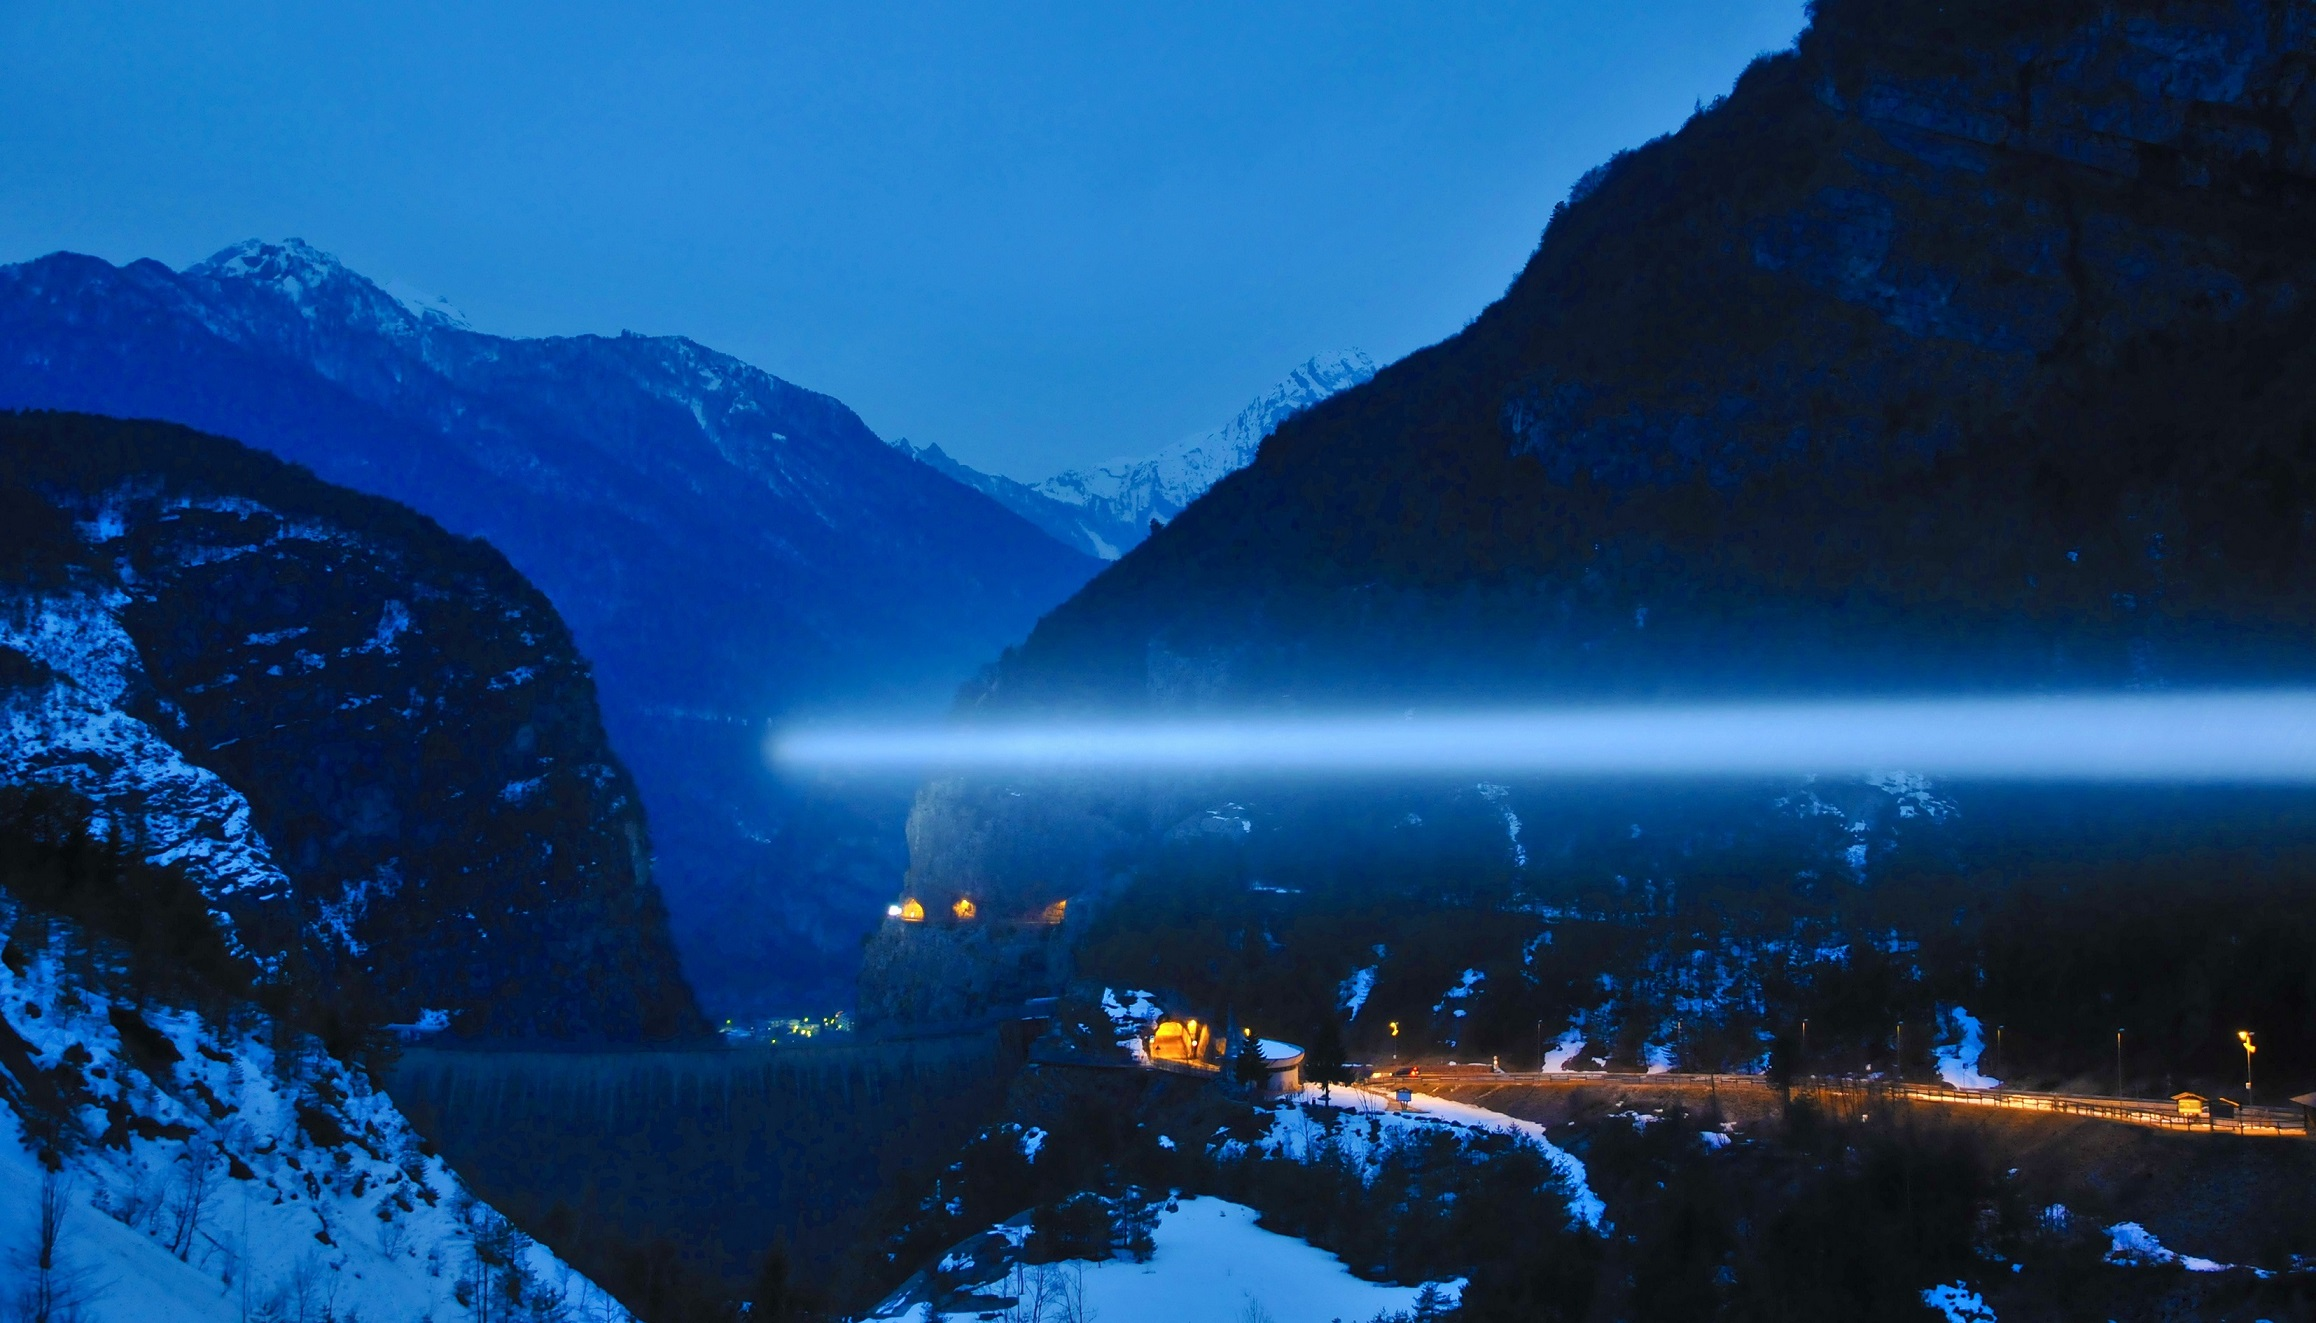 Stefano Cagol, The End of the Border (of the mind). Vajont, 2013